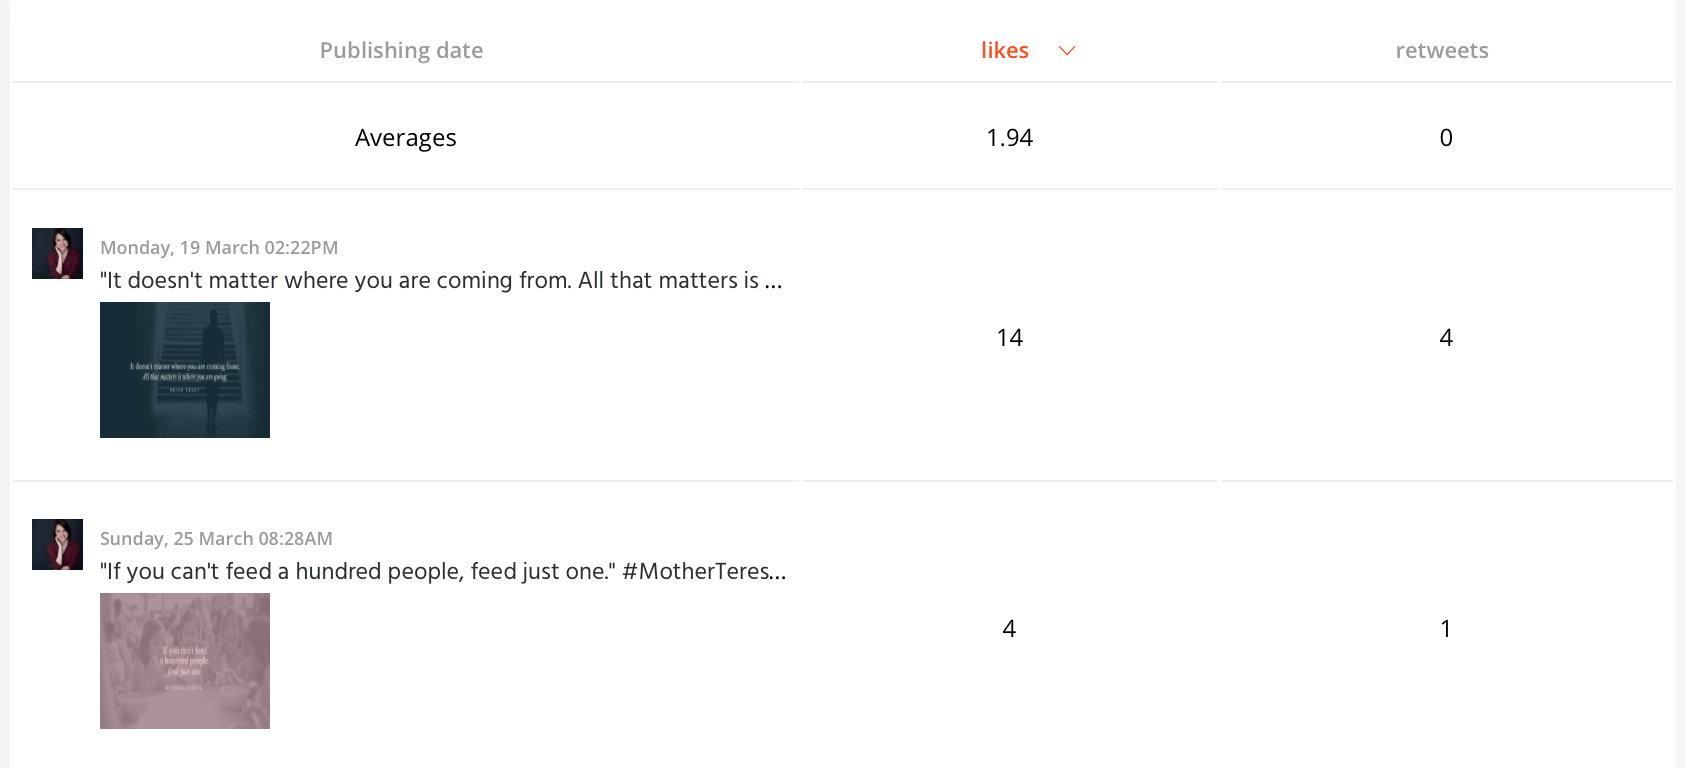 automation for Twitter spam rules -- track content trends